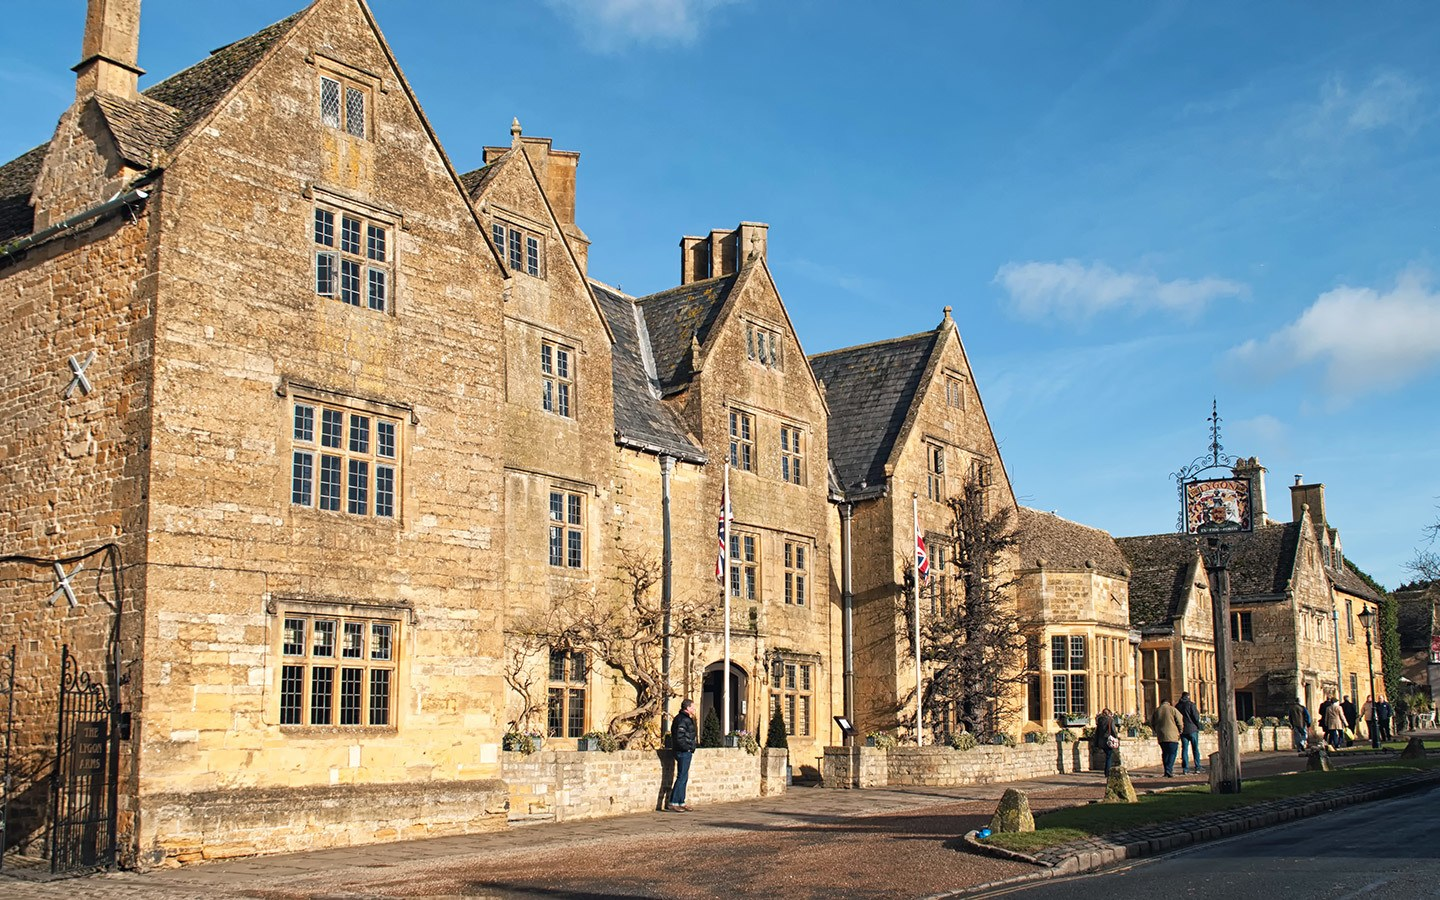 The Lygon Arms in Broadway on a weekend in the Cotswolds